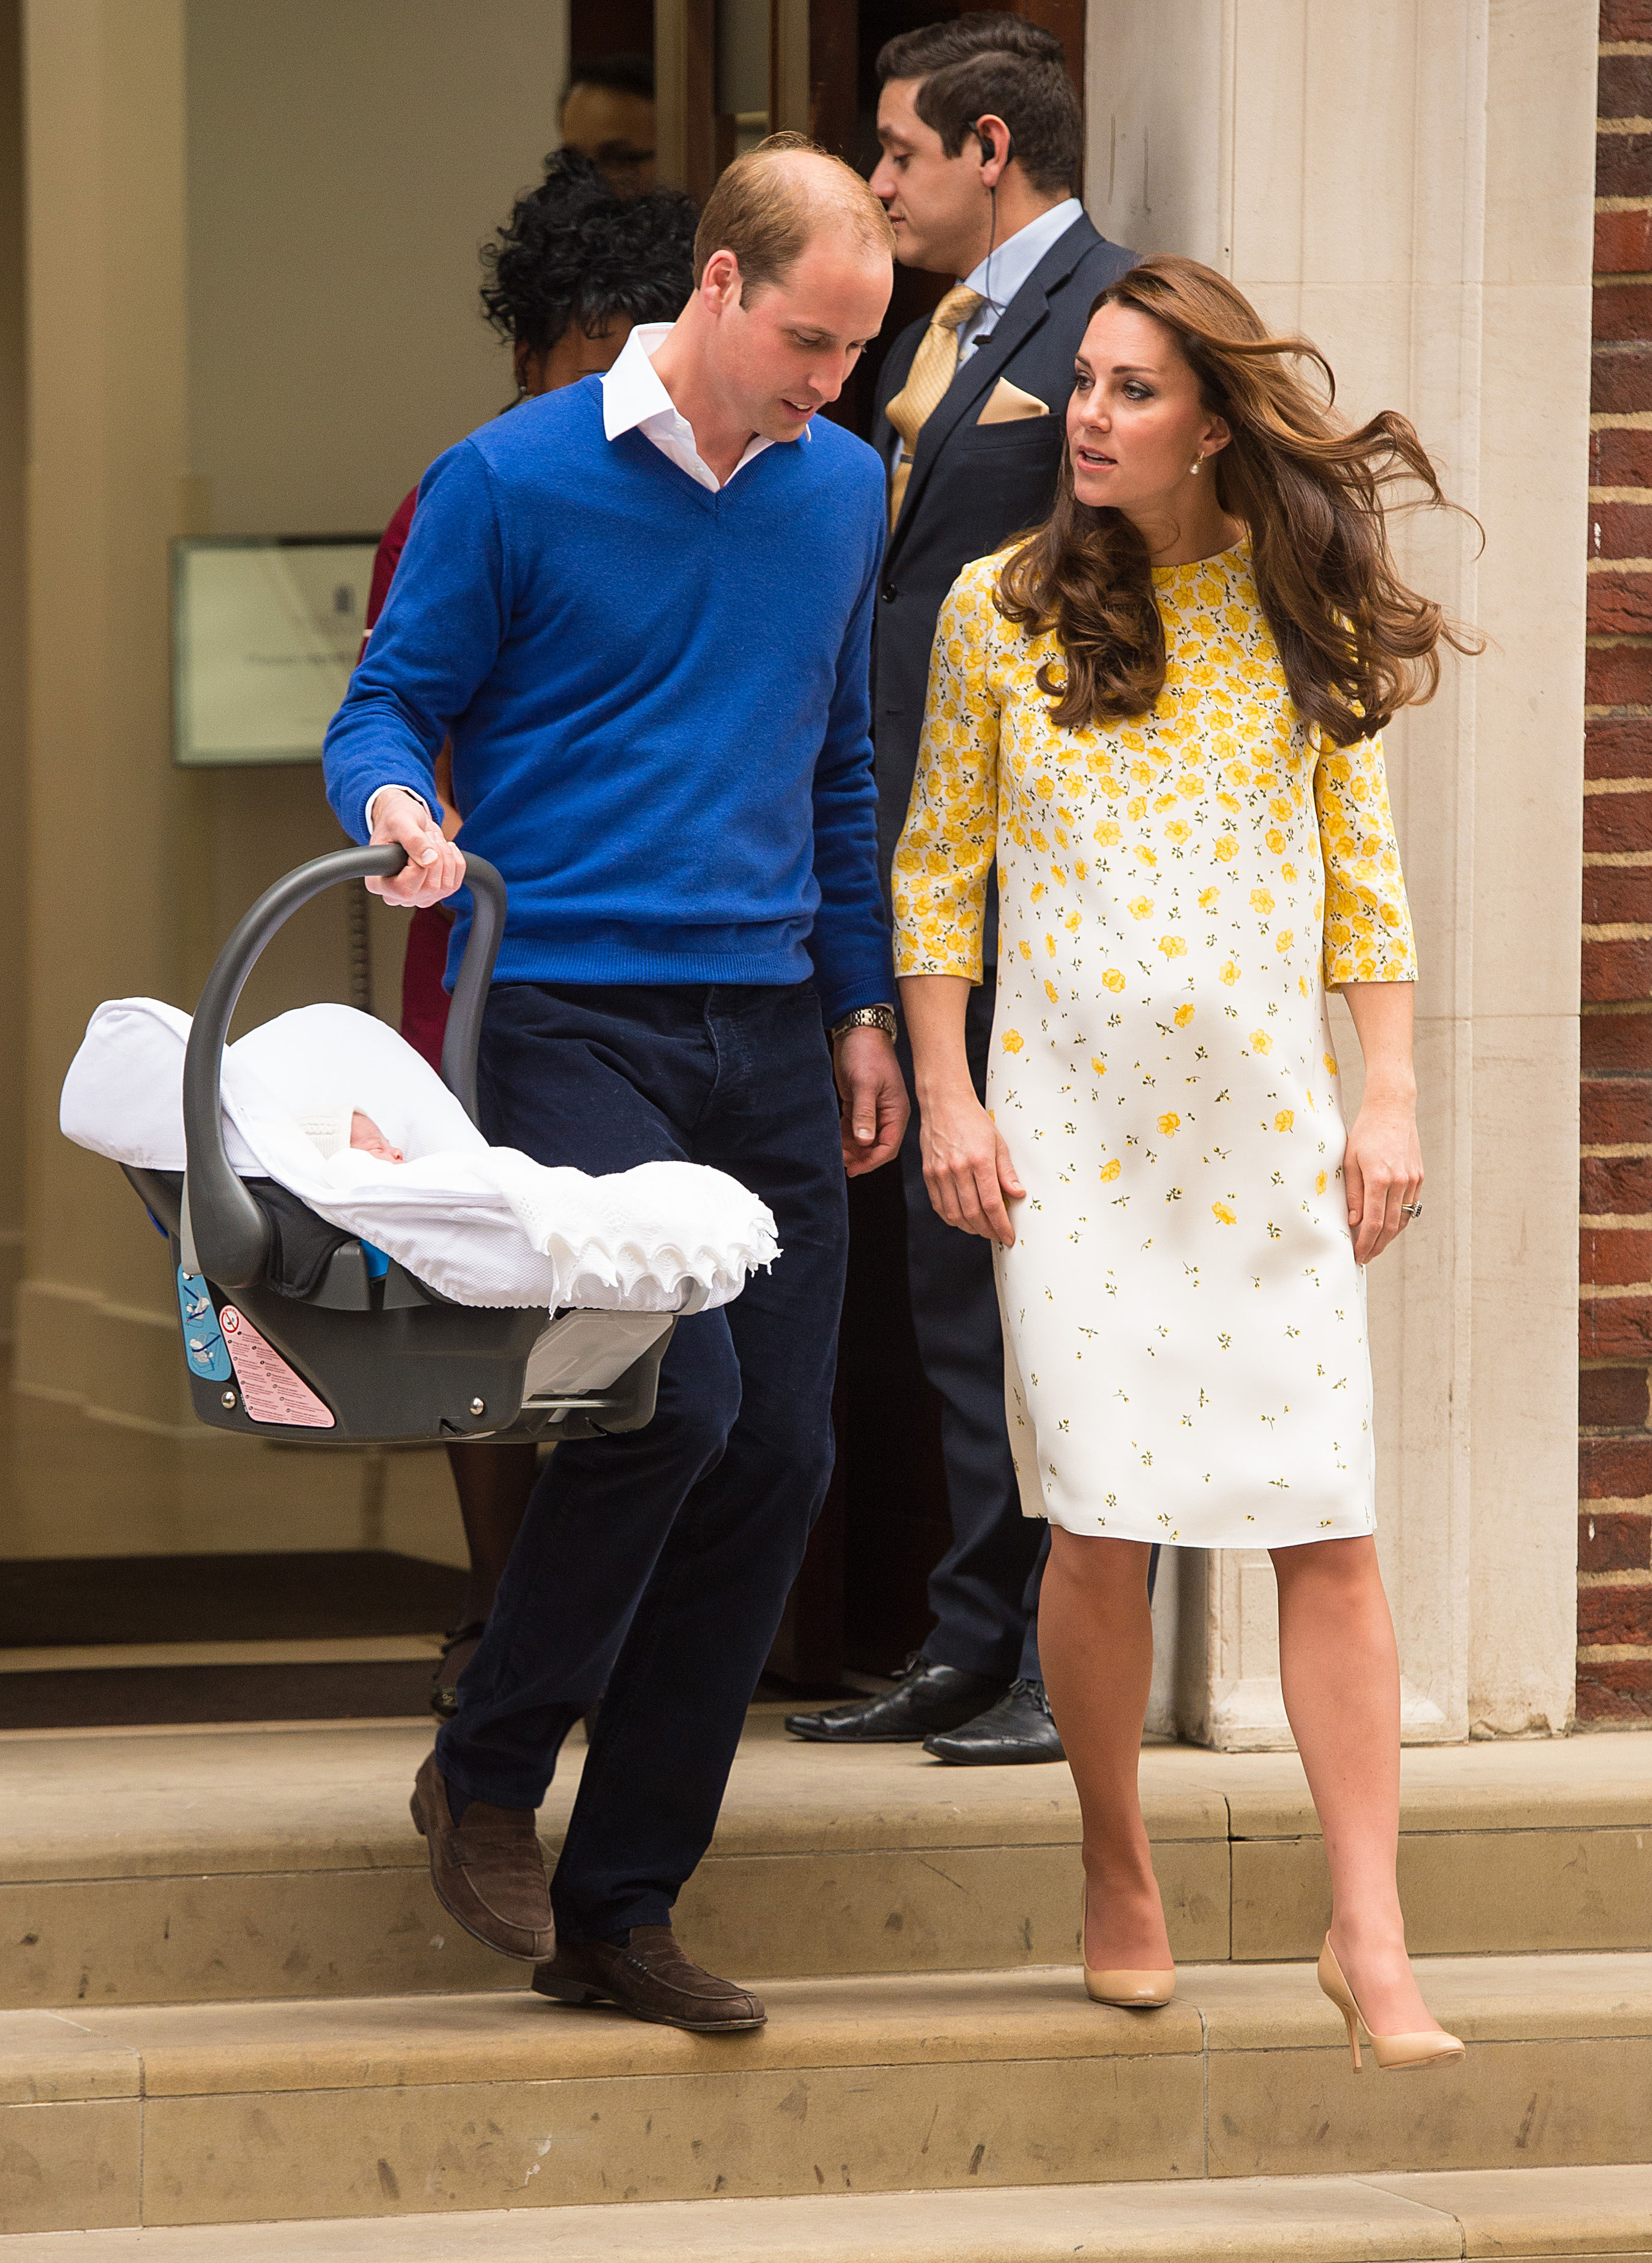 The Duke and Duchess of Cambridge and the newborn Princess of Cambridge as they leave the Lindo Wing of St Mary's Hospital in London